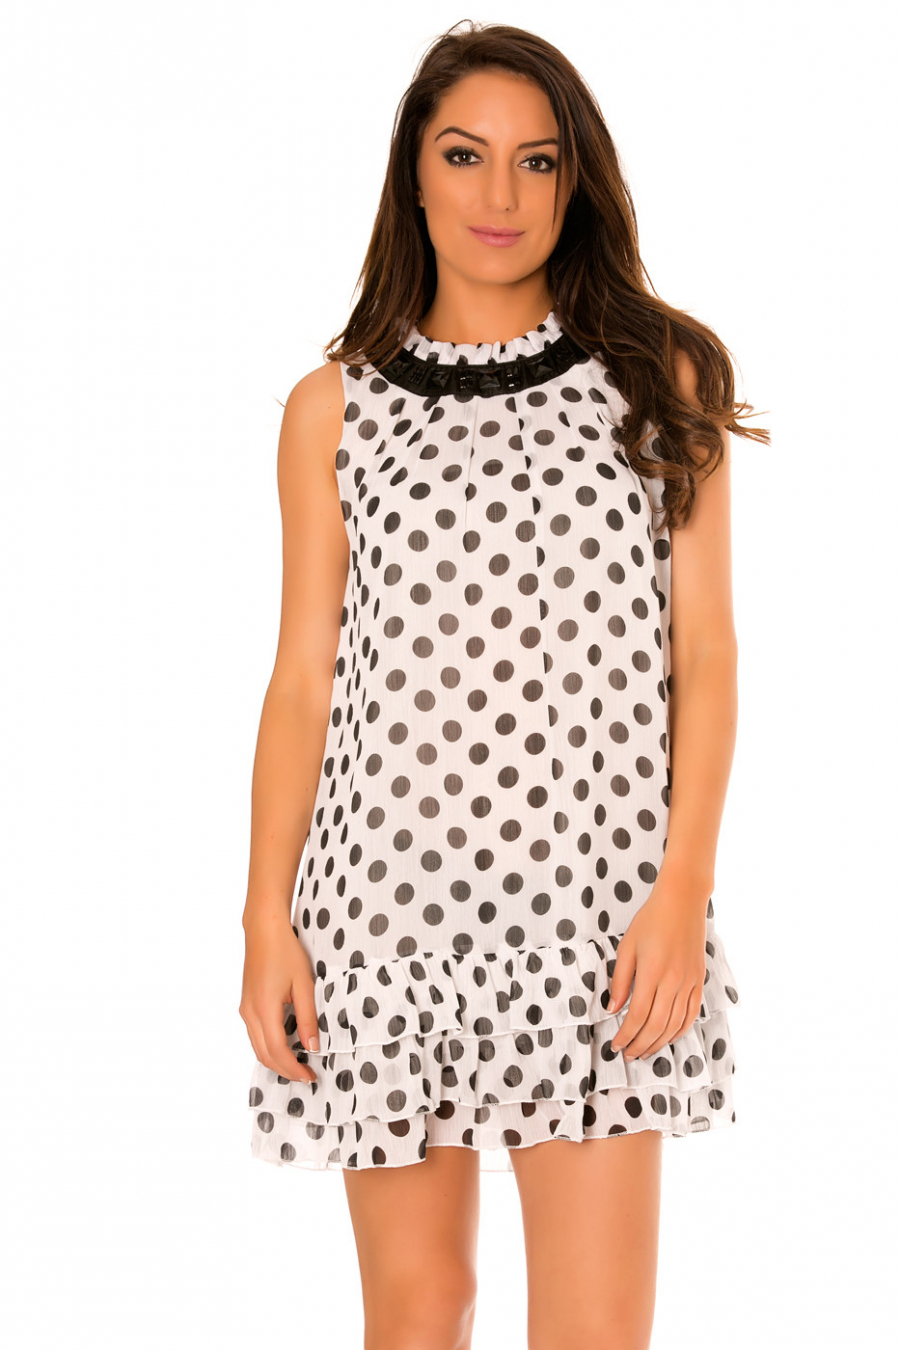 White polka dot sheer dress, pleated at the bottom and round neck. 959